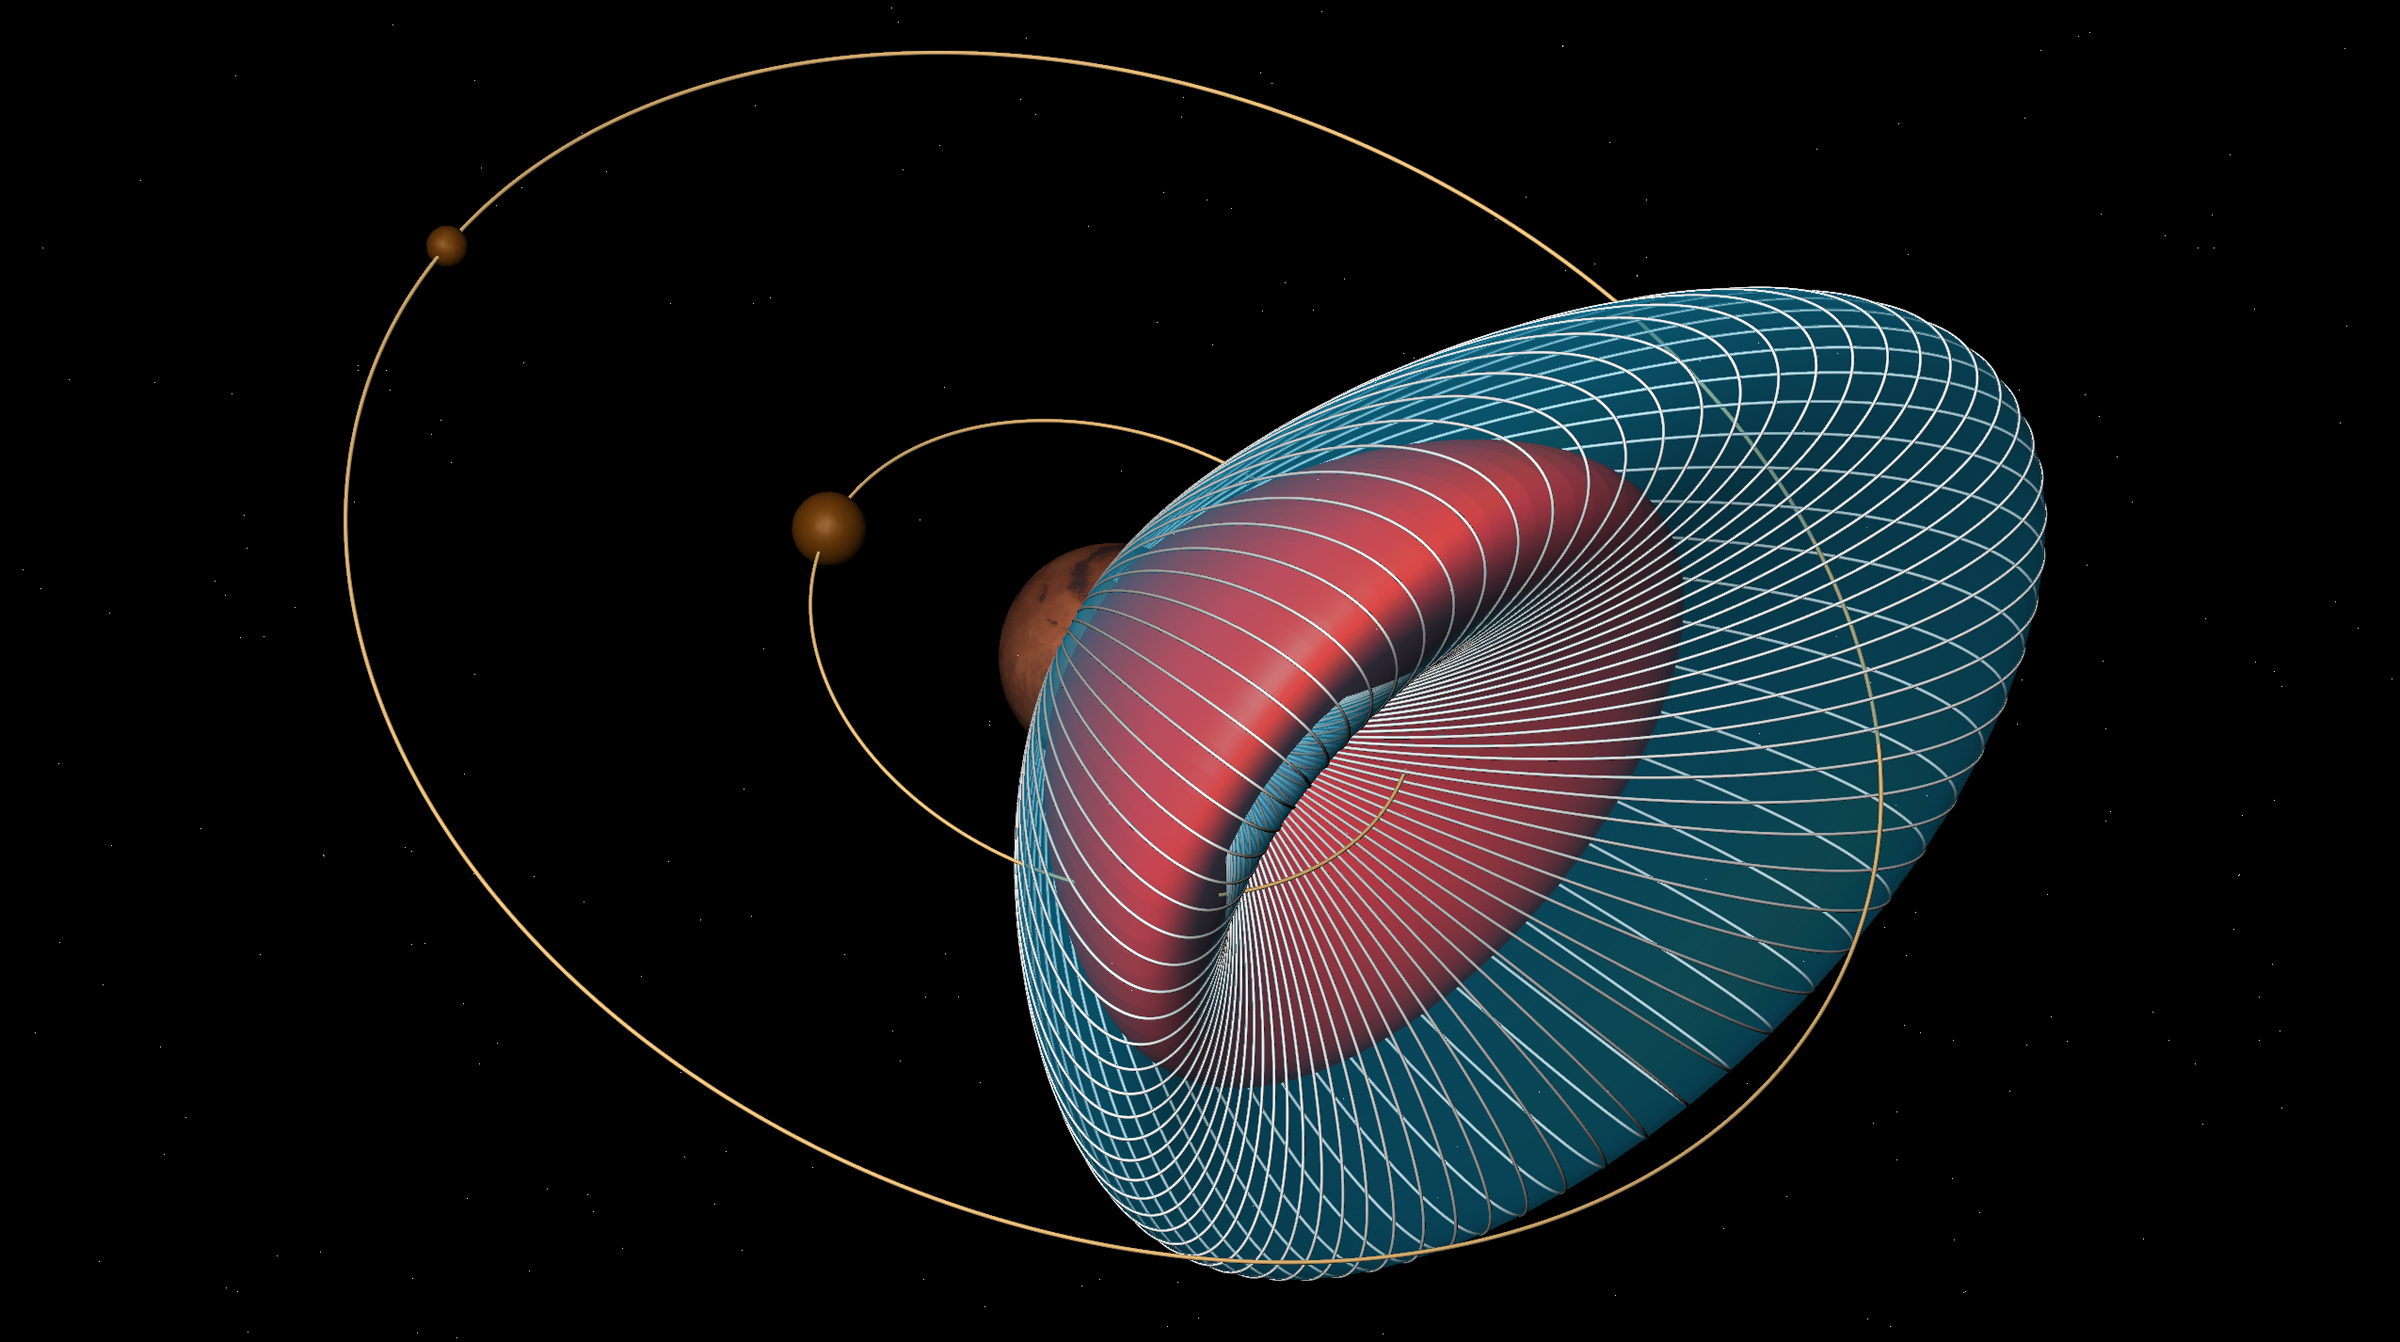 The image shows the orbits of the Martian moons Phobos and Deimos and the spread of potential particle trajectories from an asteroid impact on Mars. (Purdue University image/courtesy of Loic Chappaz)